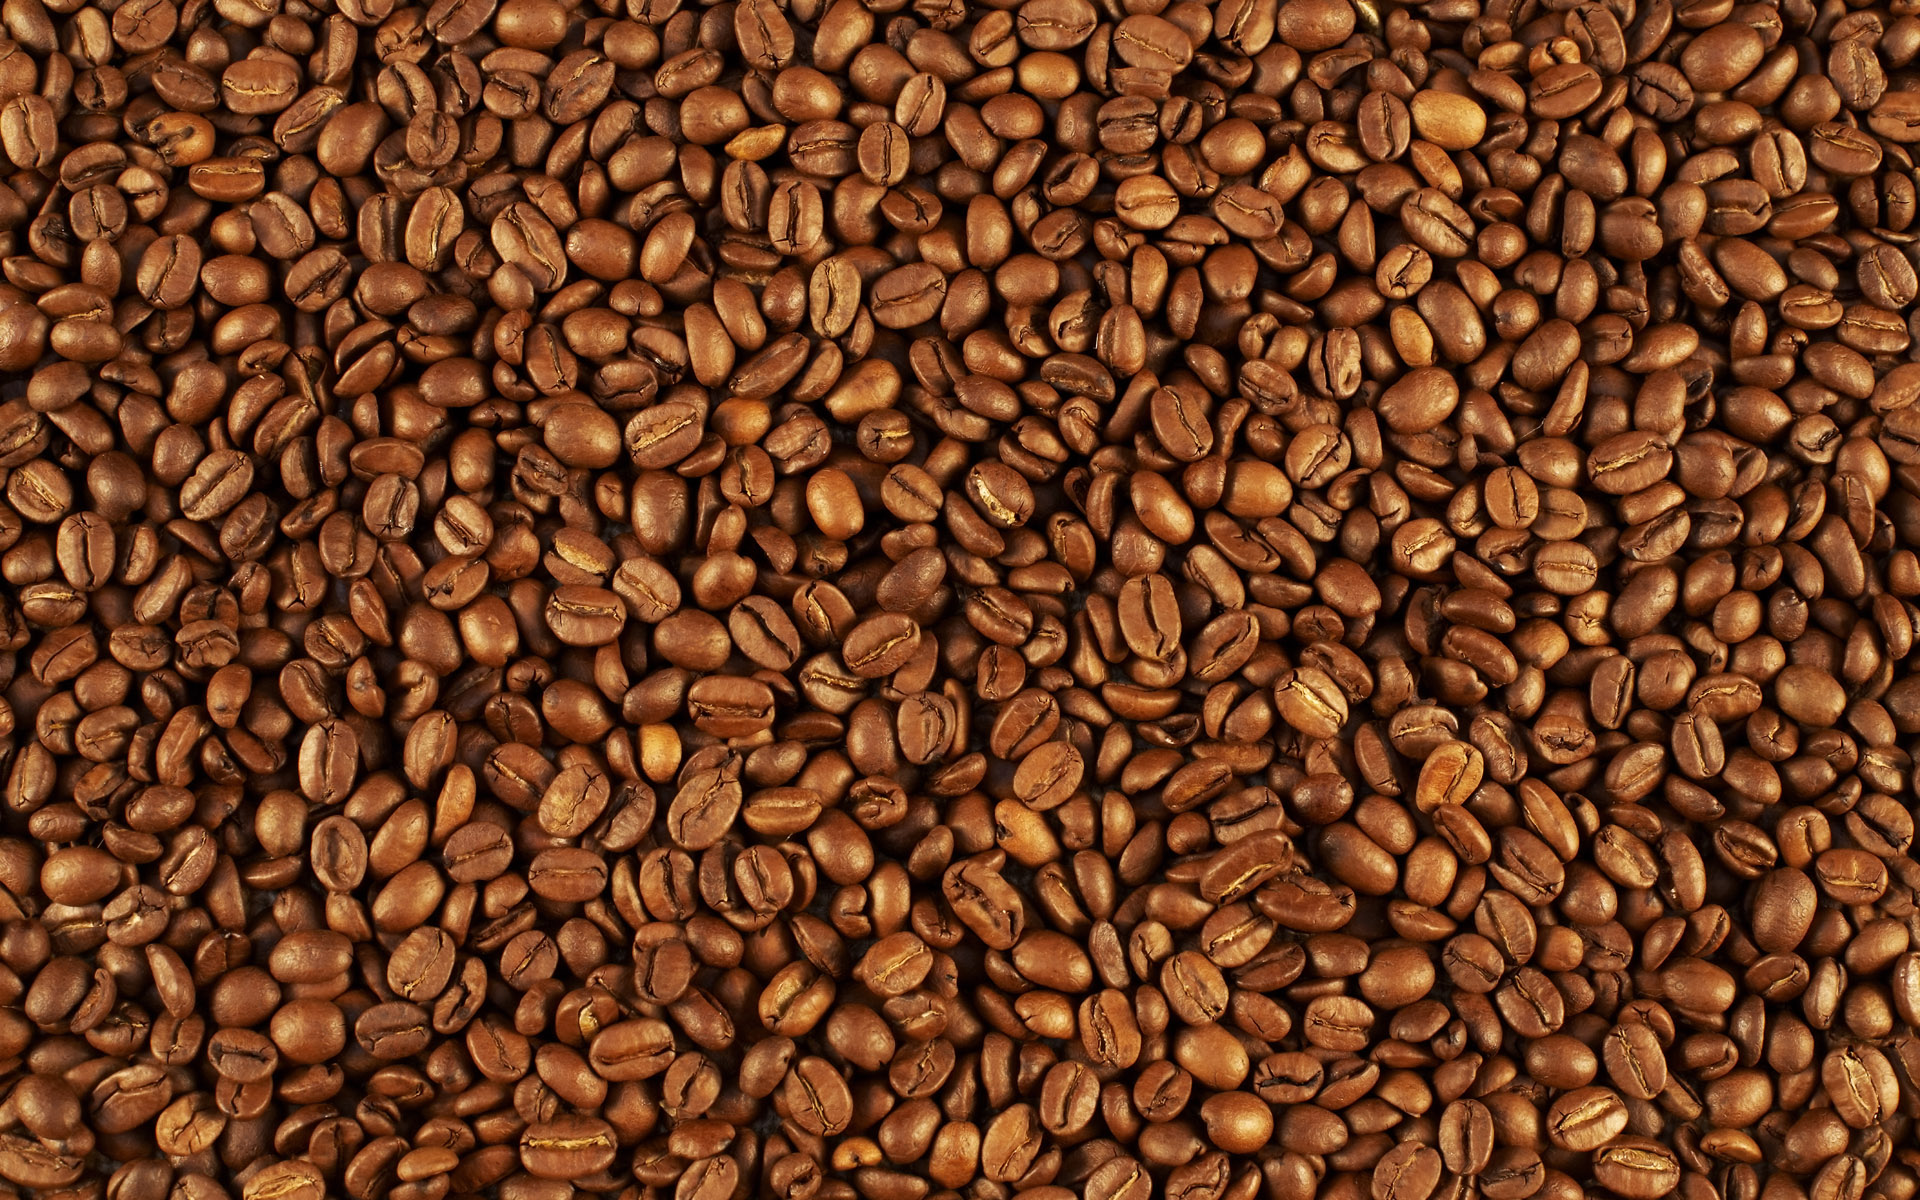 Coffee and coffee beans close-up 15786